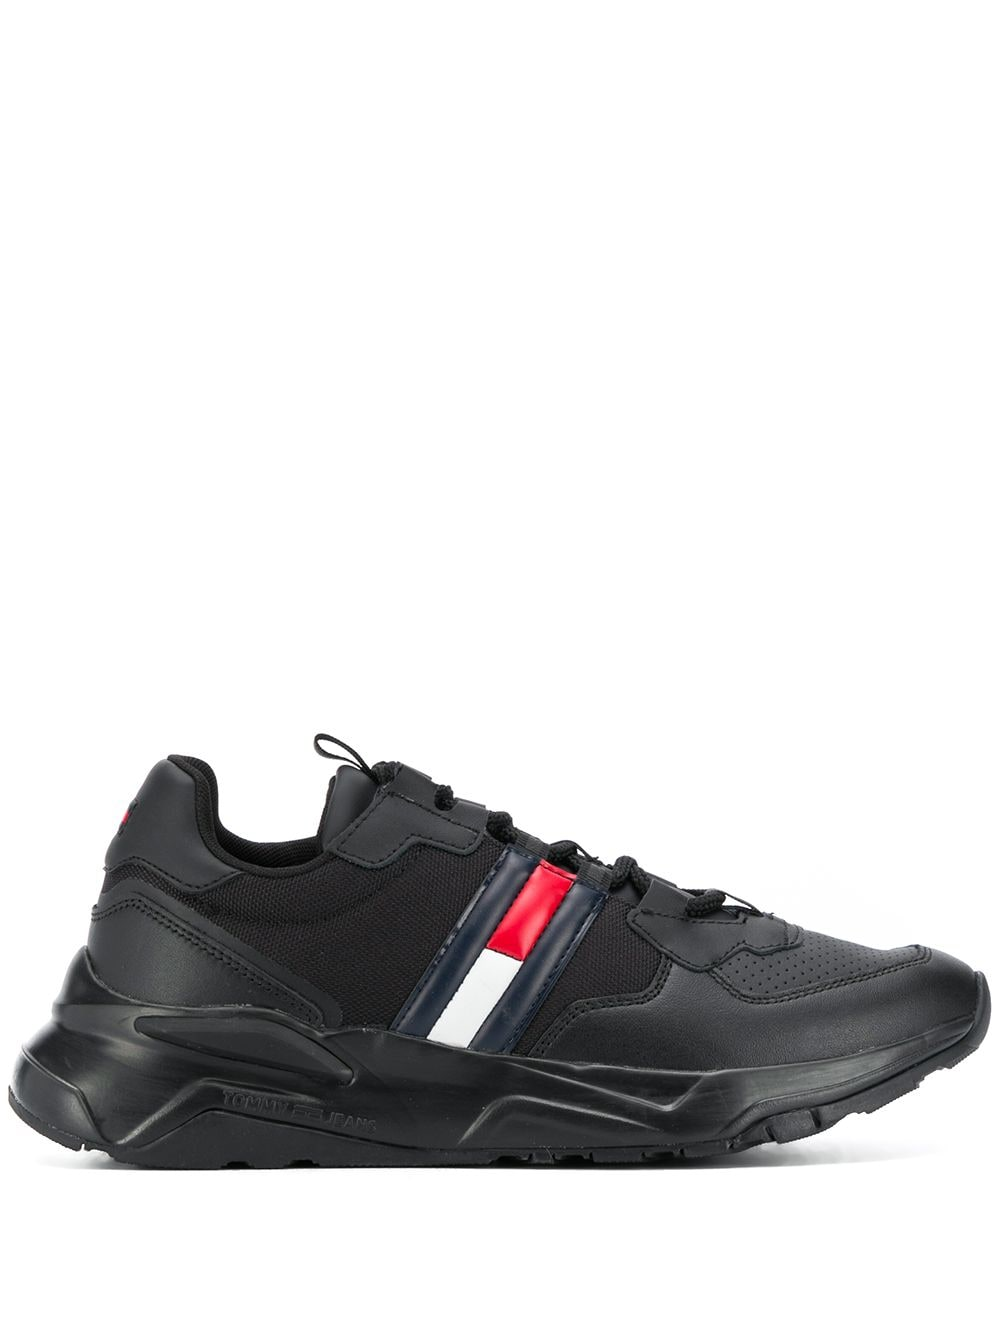 Tommy Jeans Scarpe running sneakers - Black von Tommy Jeans